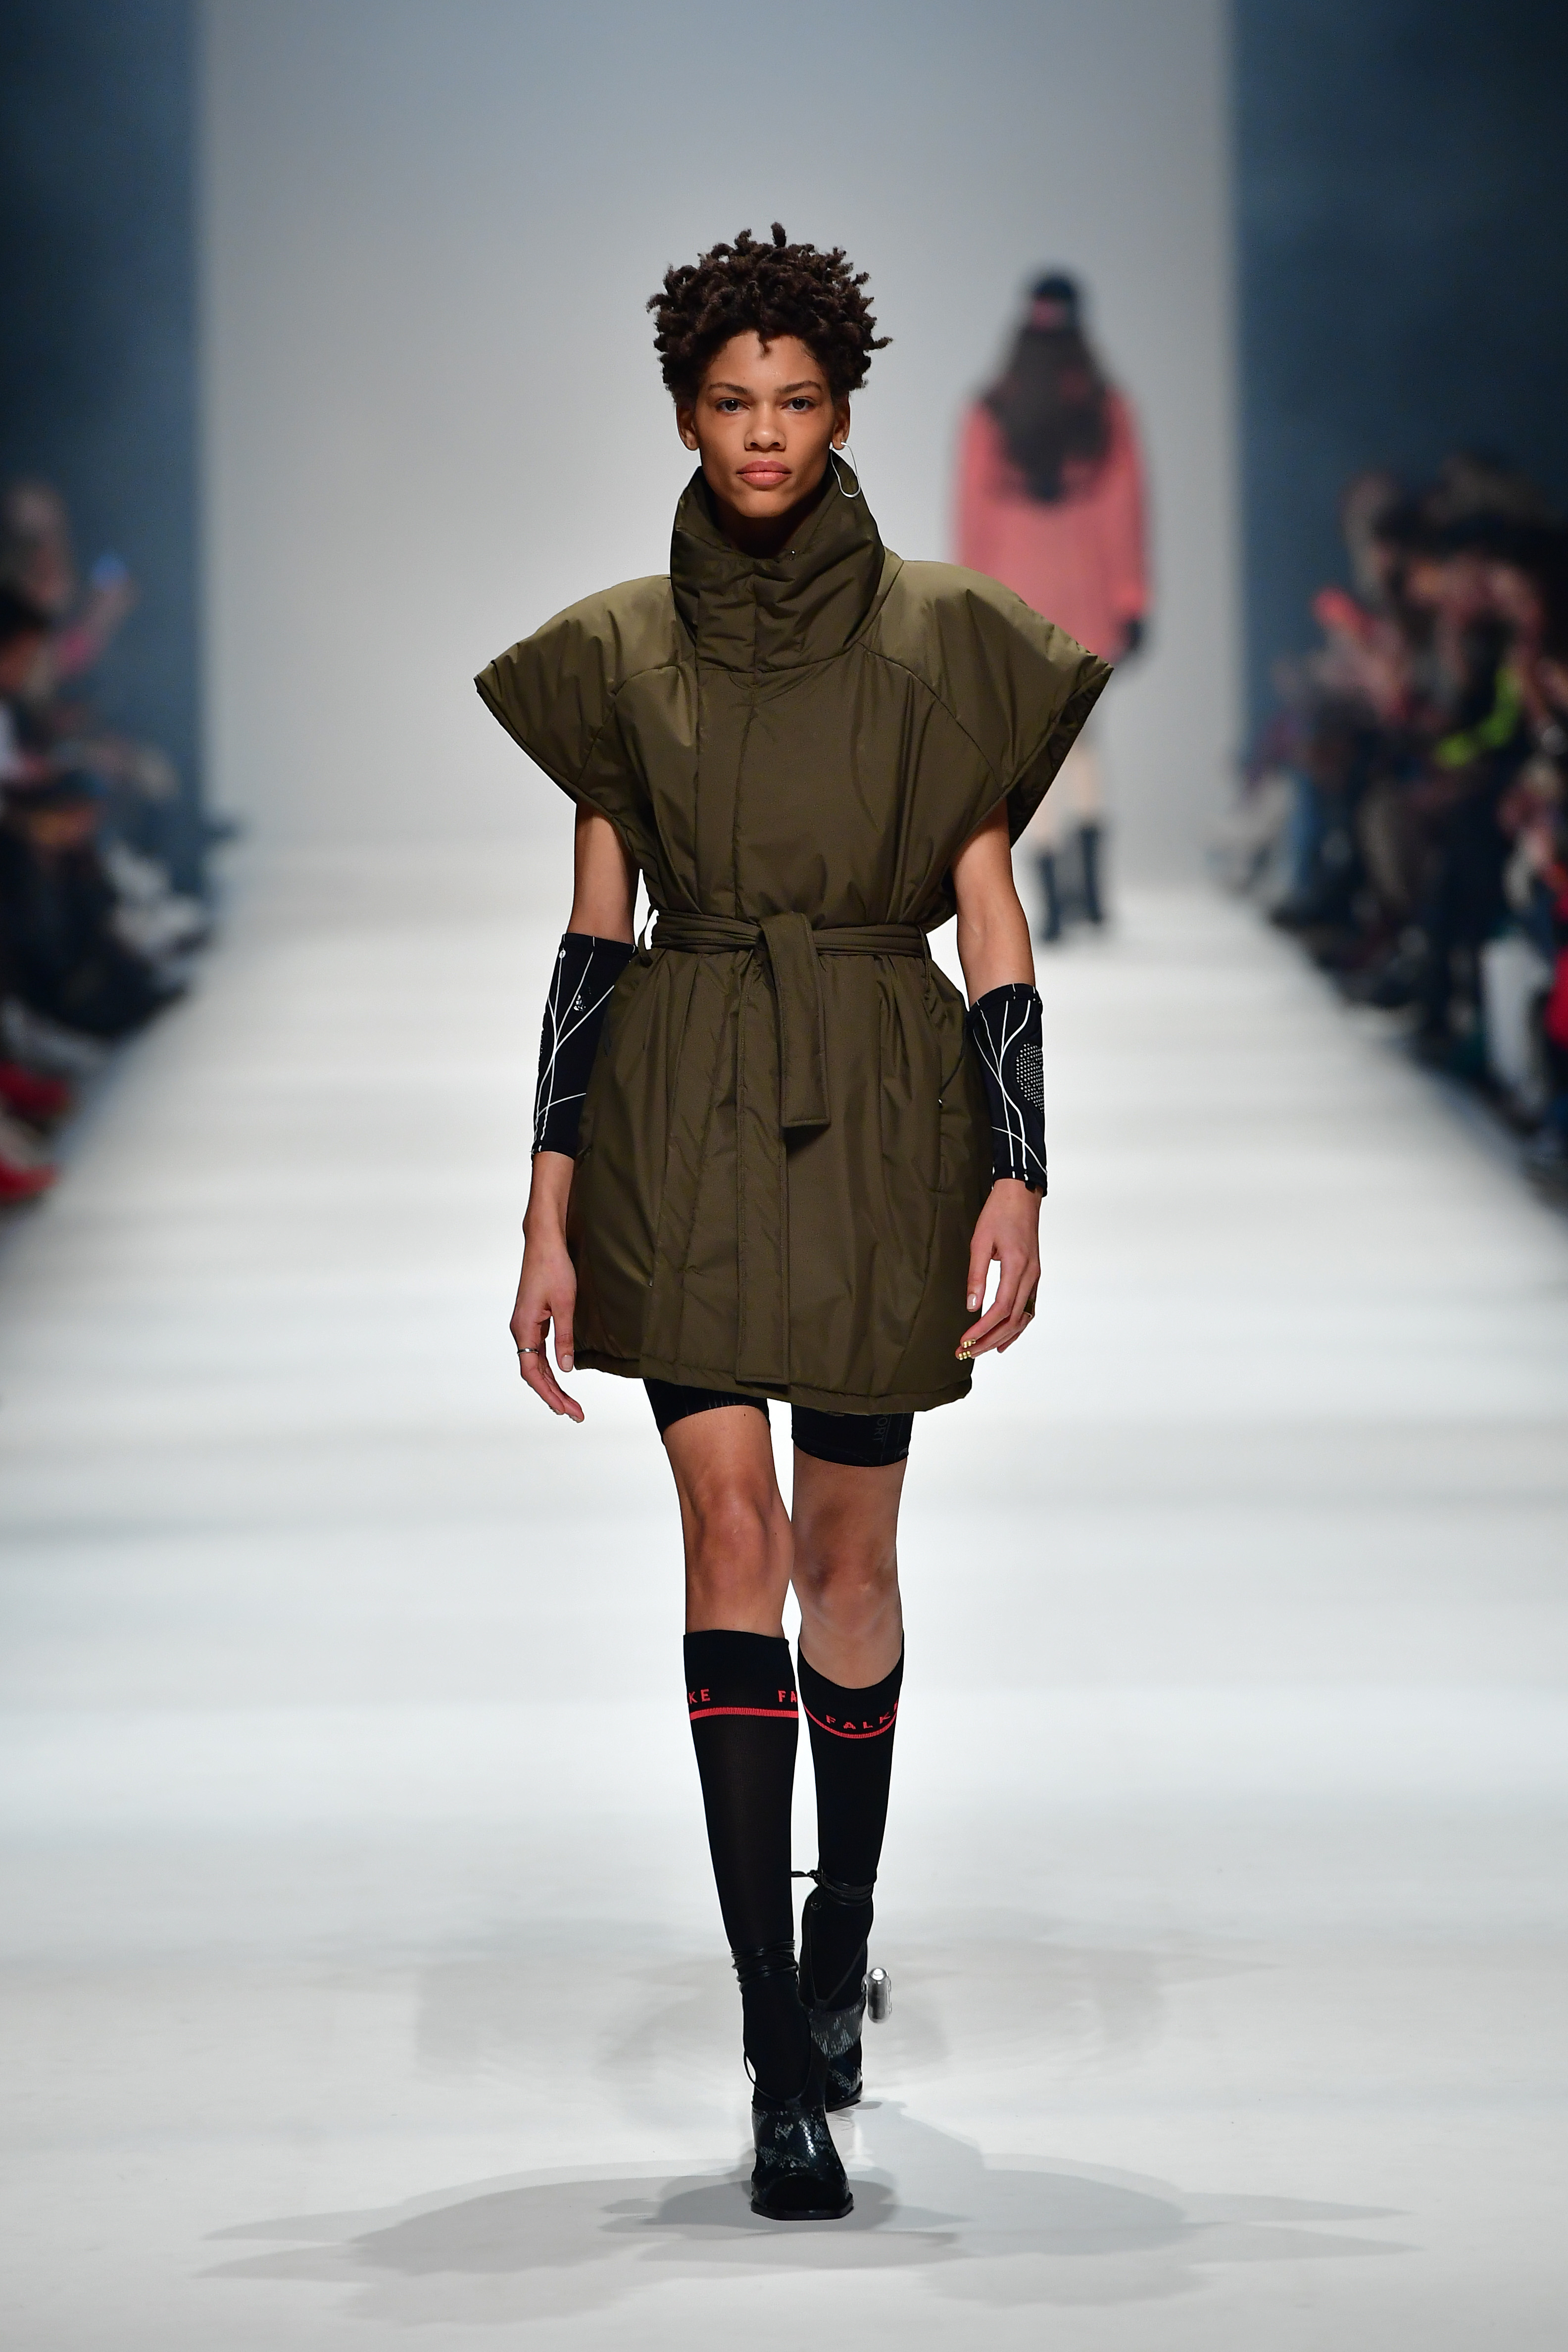 BERLIN, GERMANY - JANUARY 14: A model wearing a vestn by Ayrs, shorts by Recto Verso, earrings by Pulva Jewelry, rings by Folkdays, socks by Falke, shoes by Ballueta walks the runway at the Neonyt show during Berlin Fashion Week Autumn/Winter 2020 at Kraftwerk Mitte on January 14, 2020 in Berlin, Germany. (Photo by Alexander Koerner/Getty Images for MBFW)